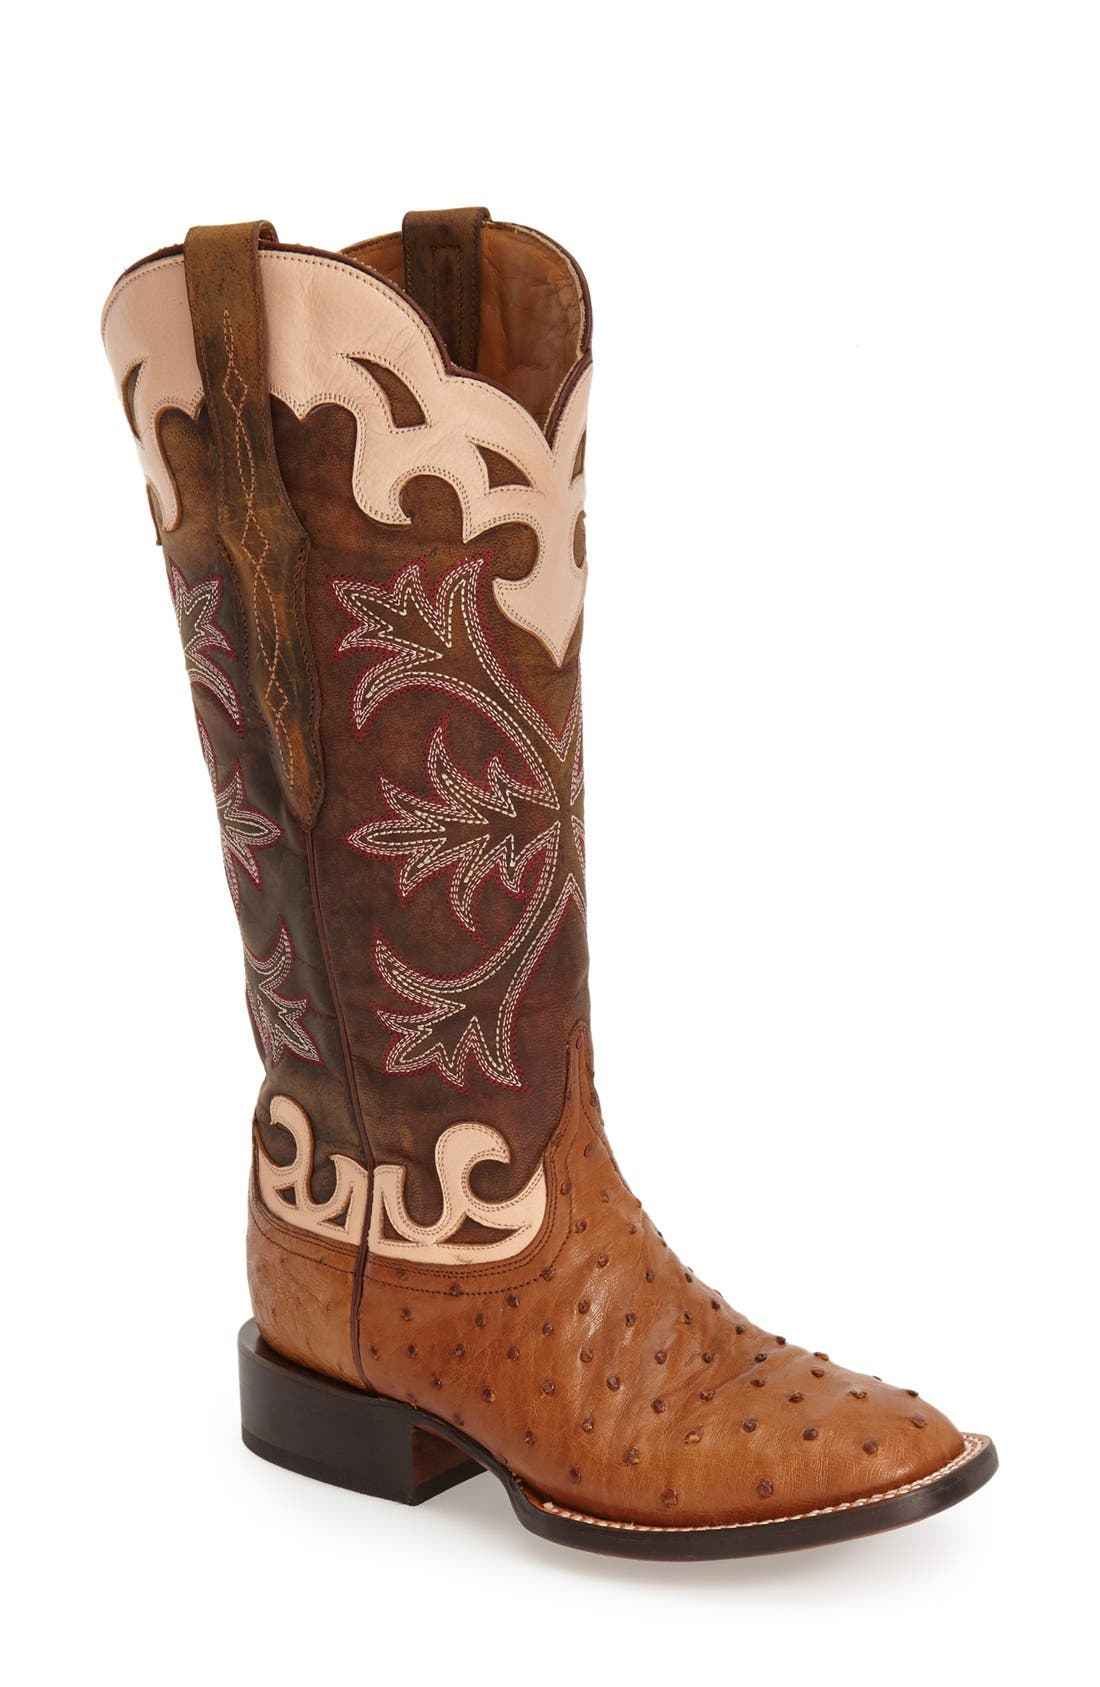 Alternate Image 1 Selected - Lucchese'Sienna' Western Boot (Women)